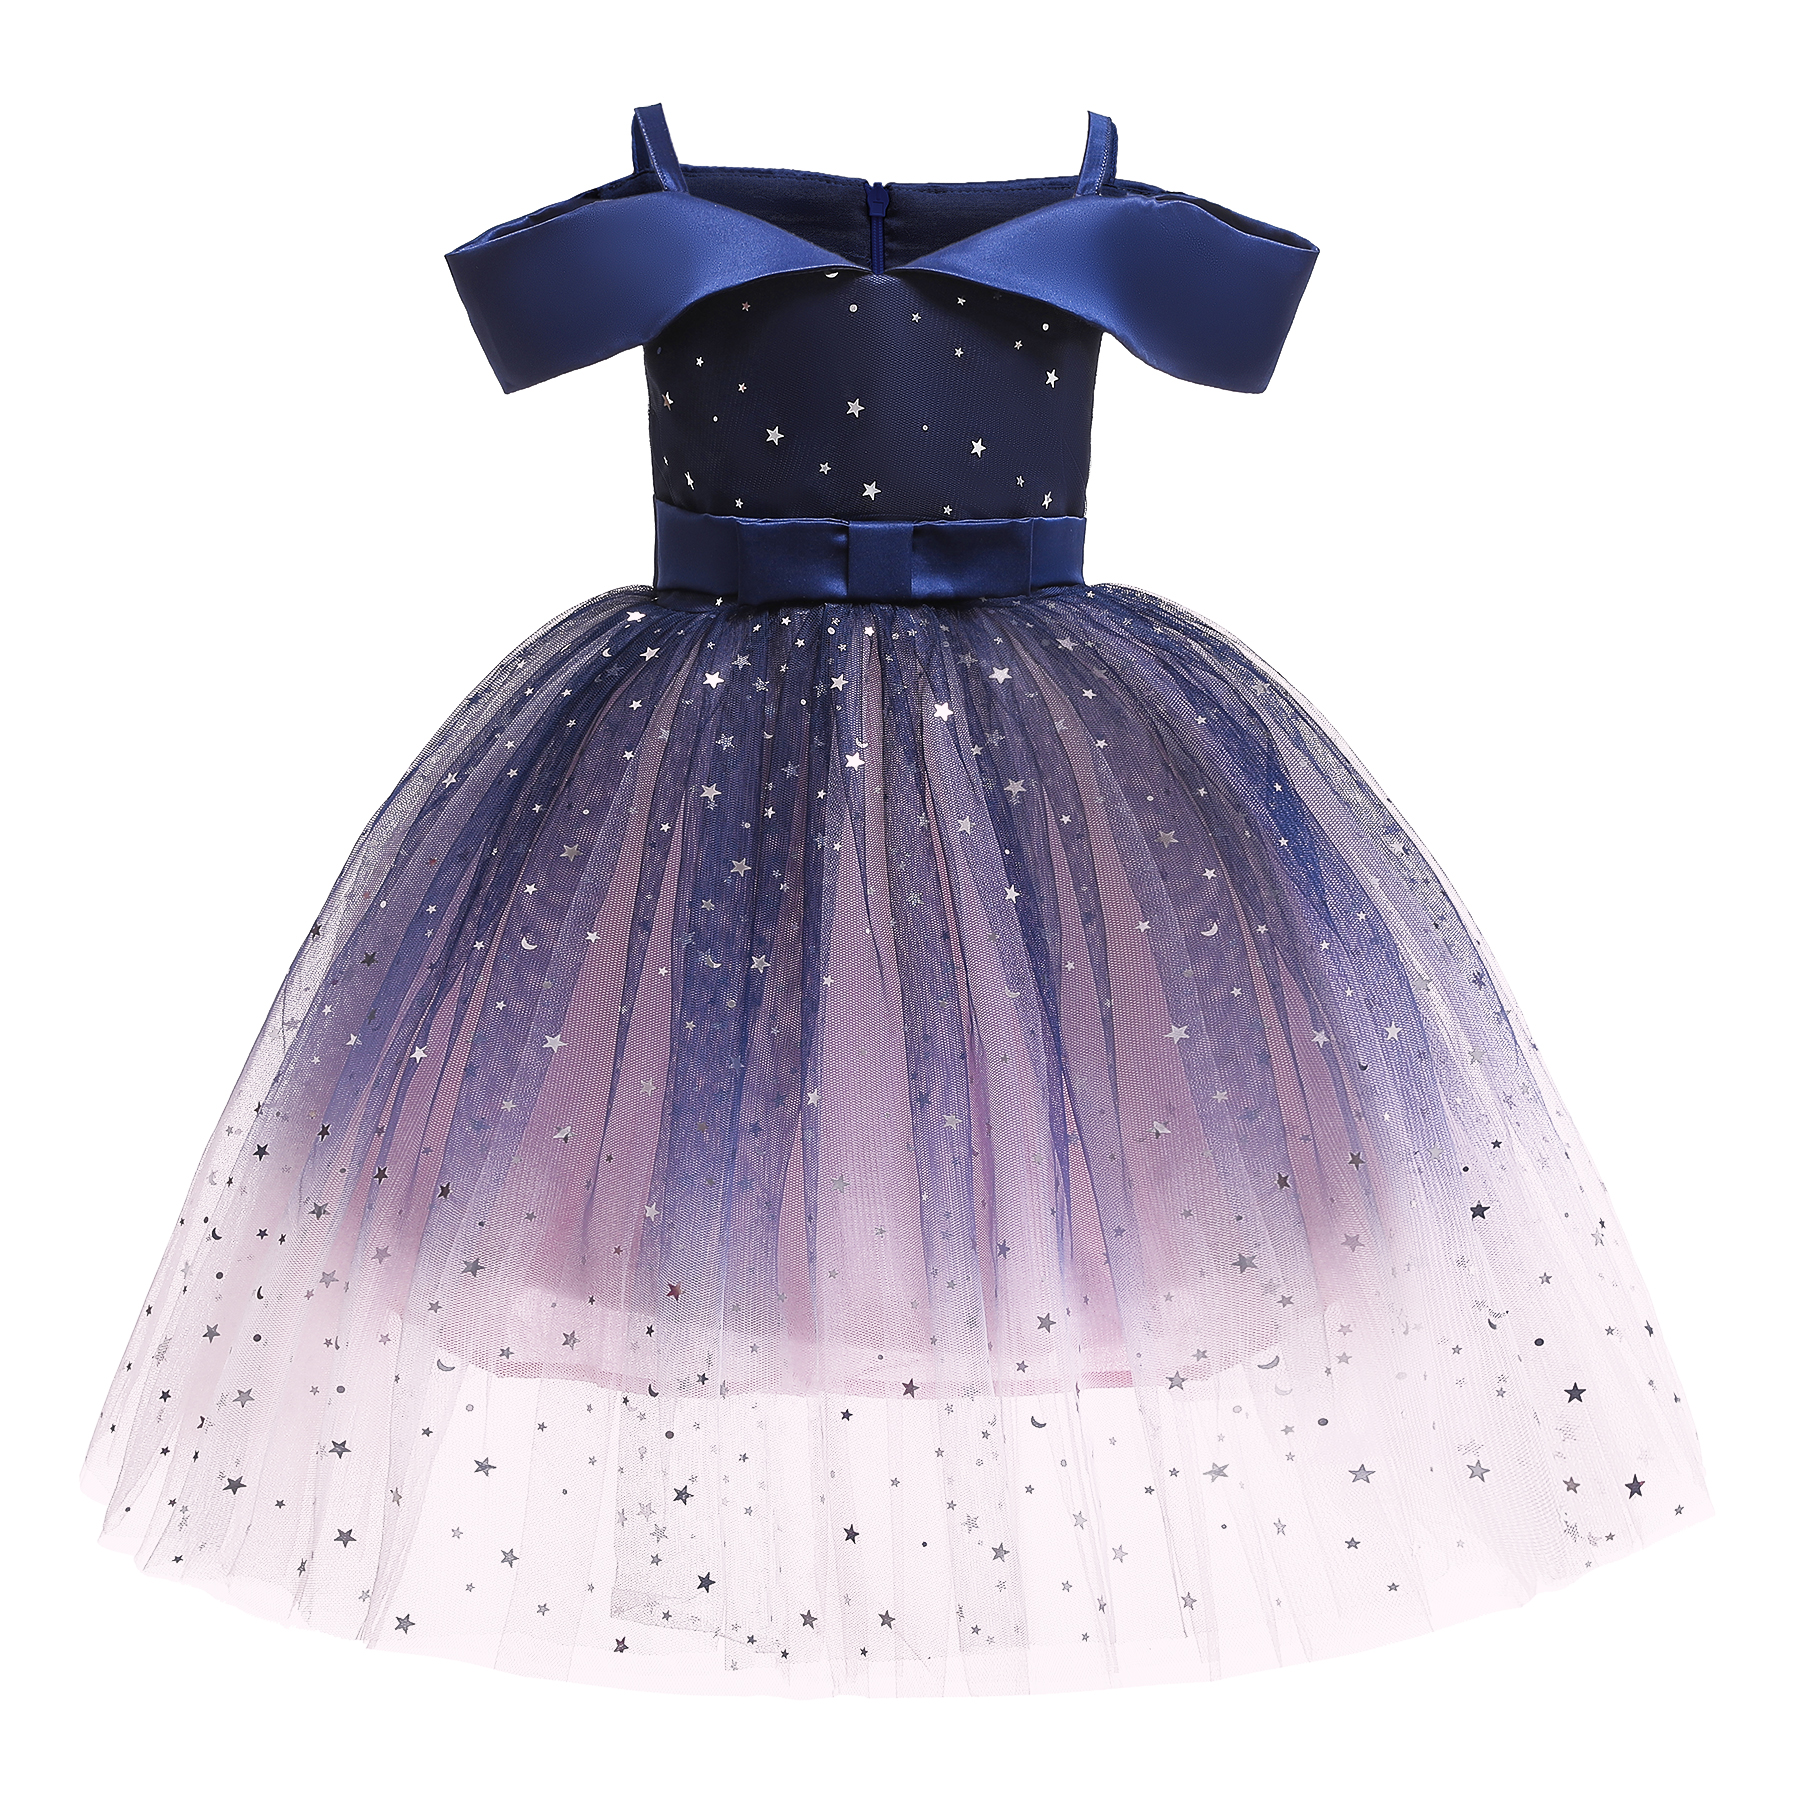 PatPat / Elegant Starry Gradient Color Mesh Party Dress